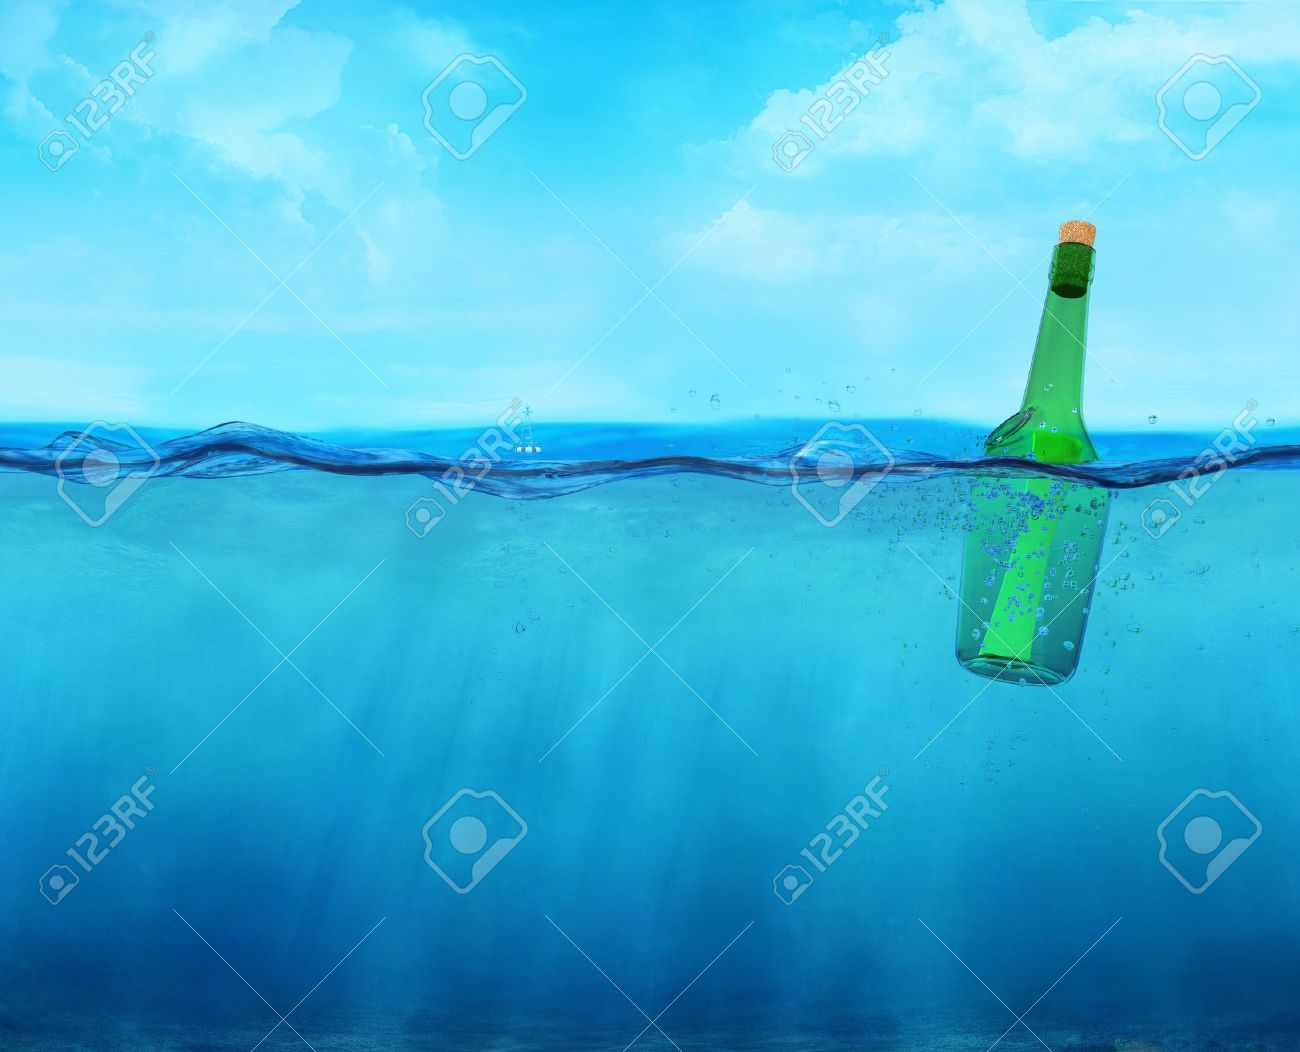 3d floating bottle with message on the ocean waterline view Stock Photo - 11648359